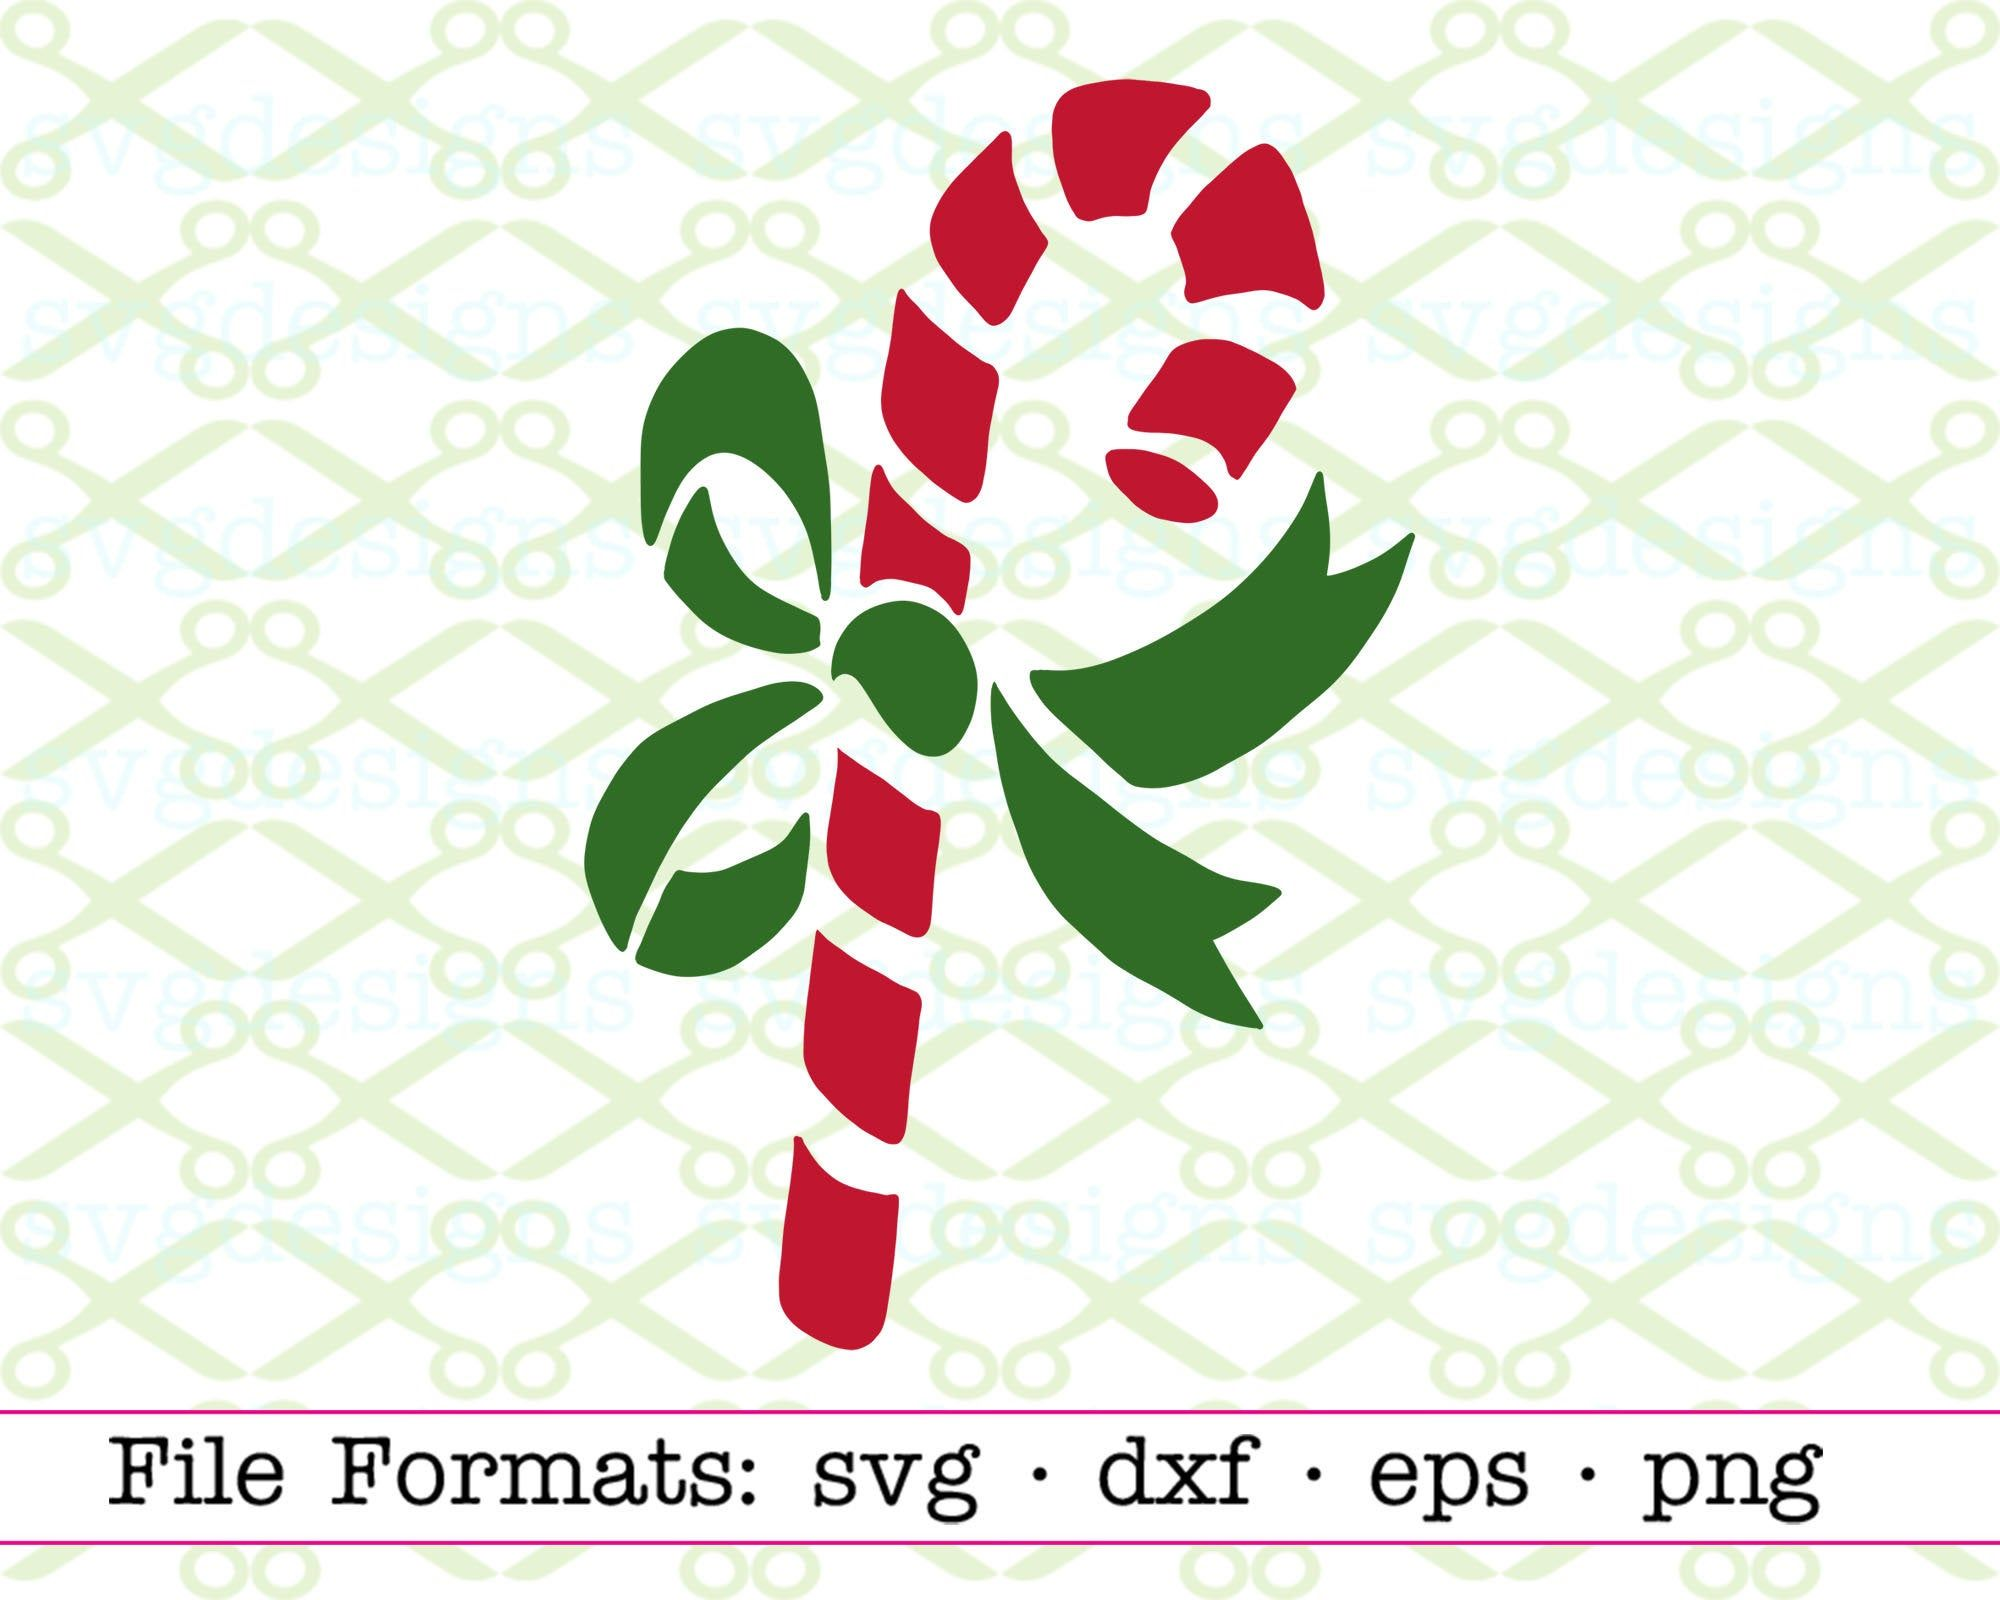 Candy Cane SVG, Dxf, Eps, Png. Files for Cricut